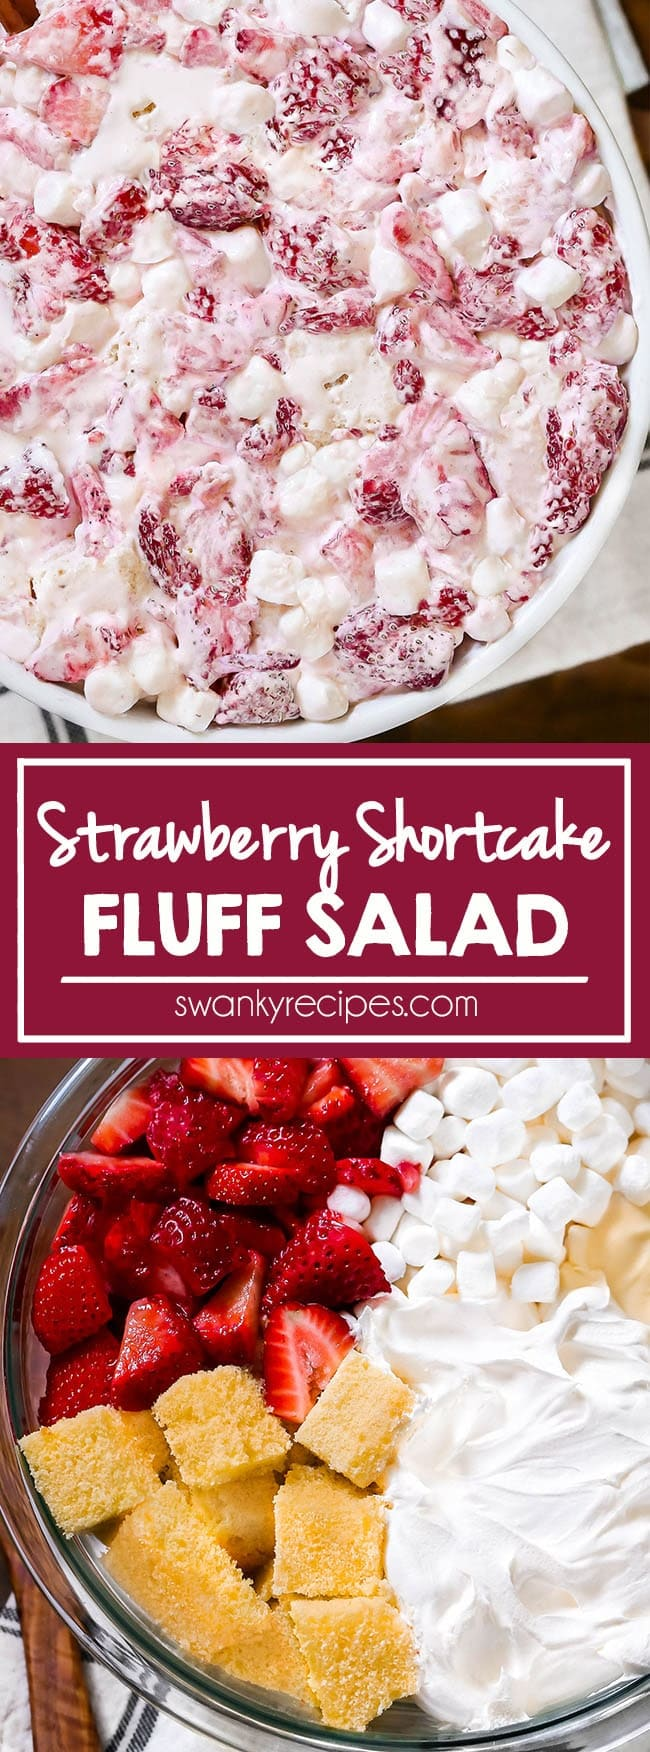 Strawberries sliced in a bowl and folded into a creamy mixture of whipped cream, sweetened condensed milk, mini marshmallows, and little chunks of pound cake.